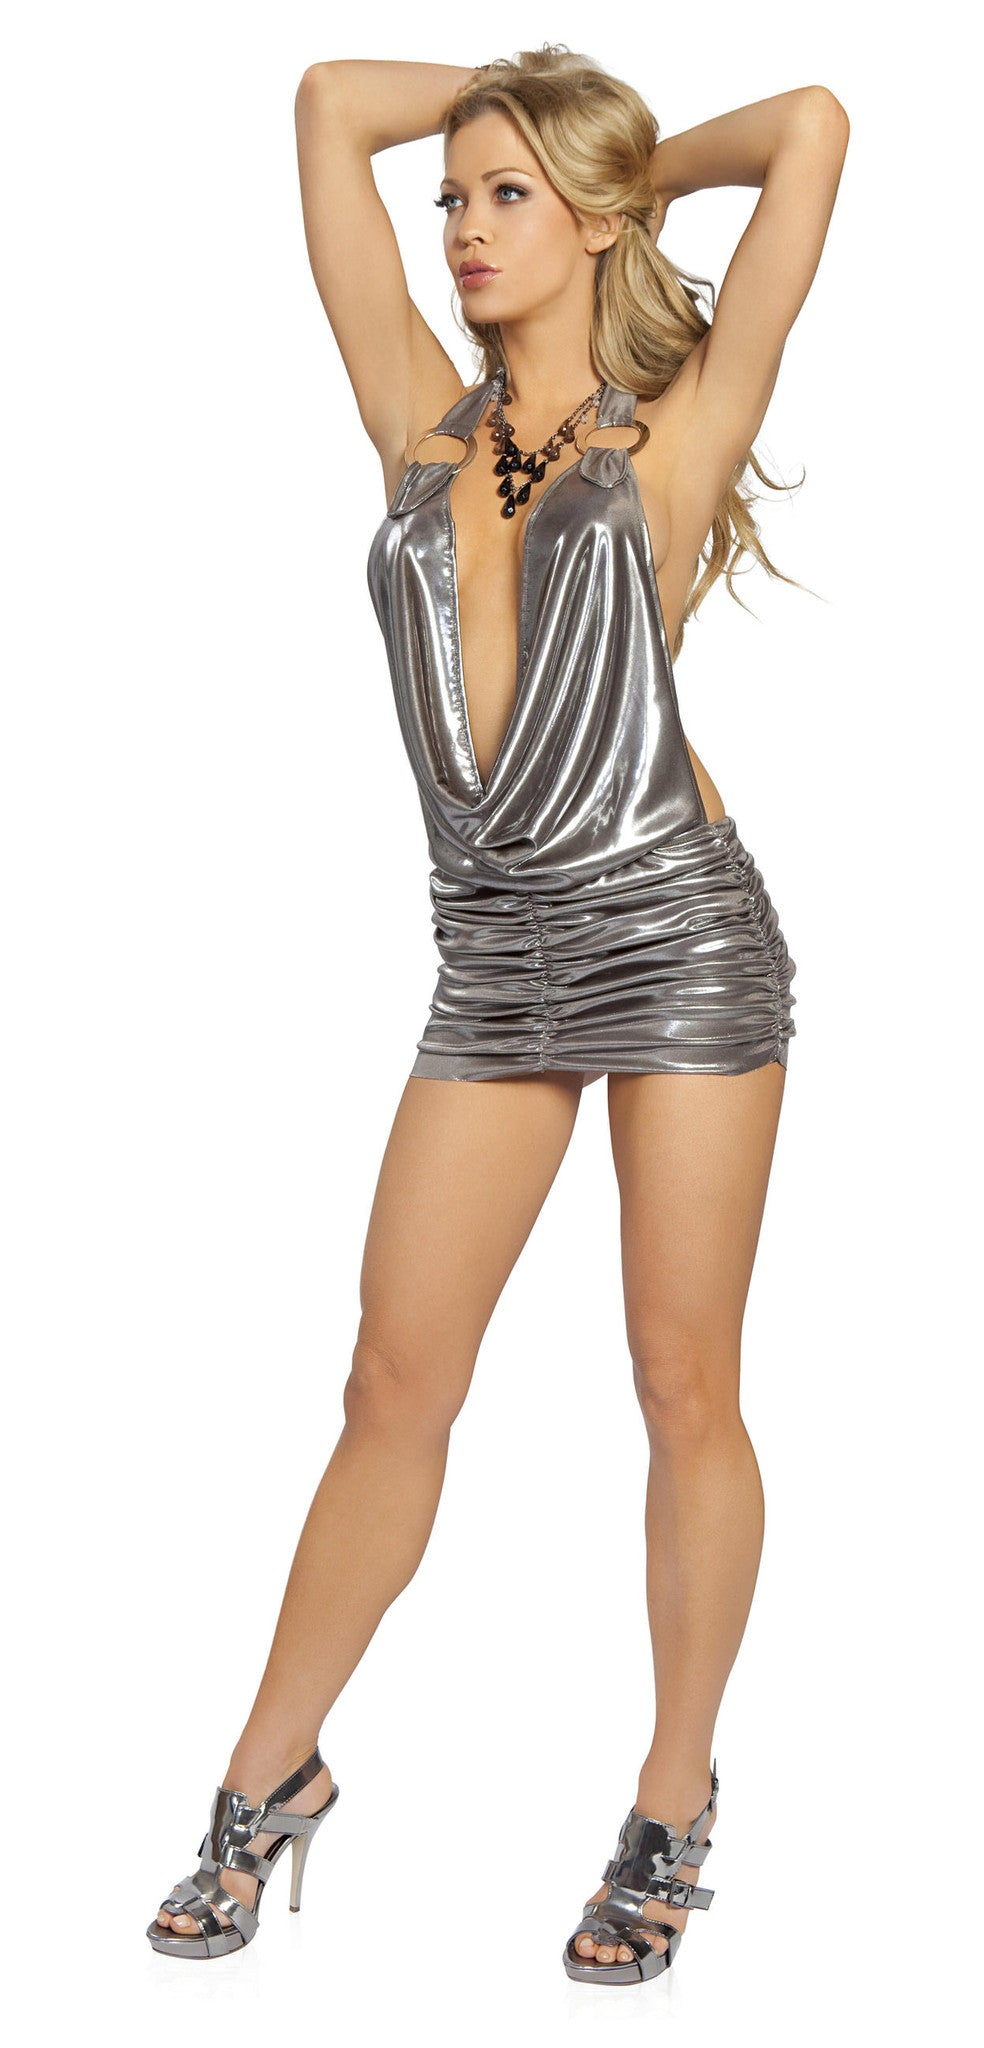 3141 - 1pc Cowl Neck Gunmetal Mini Dress ${description} | Roma Costume and Roma Confidential wholesale manufacturer of Women Apparel bulk world wide wholesale and world wide drop ship services for Adult Halloween Costumes, Sexy and Elegant Lingerie, Rave Clothing, Club wear, and Christmas Costumes. Mini Dresses,New Products, Roma Costume, Inc., Roma Costume, Roma Confidential, Wholesale clothing, drop ship, drop ship service, Wholesale Lingerie, Wholesale Adult Halloween Costumes, Rave Clothing, EDM Clothing, Festival Wear, Christmas Costumes, Clubwear, Club wear.